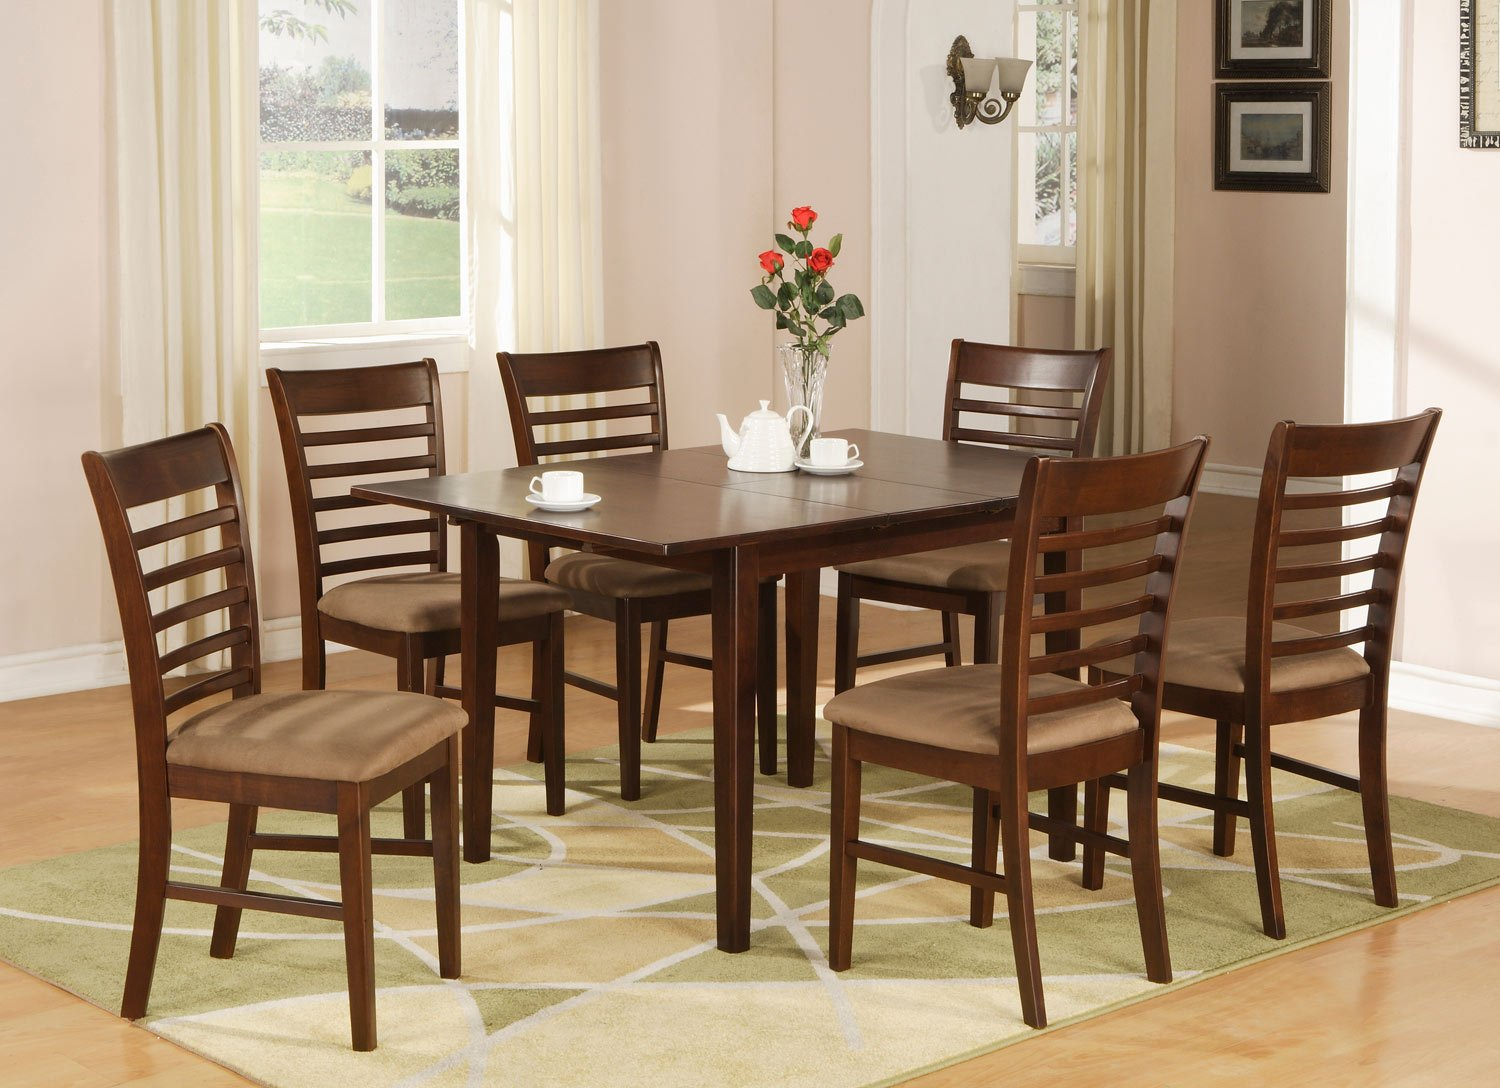 ladder back chair pro gaming chairs uk milan 7-pc rectangular dinette dining table set-36